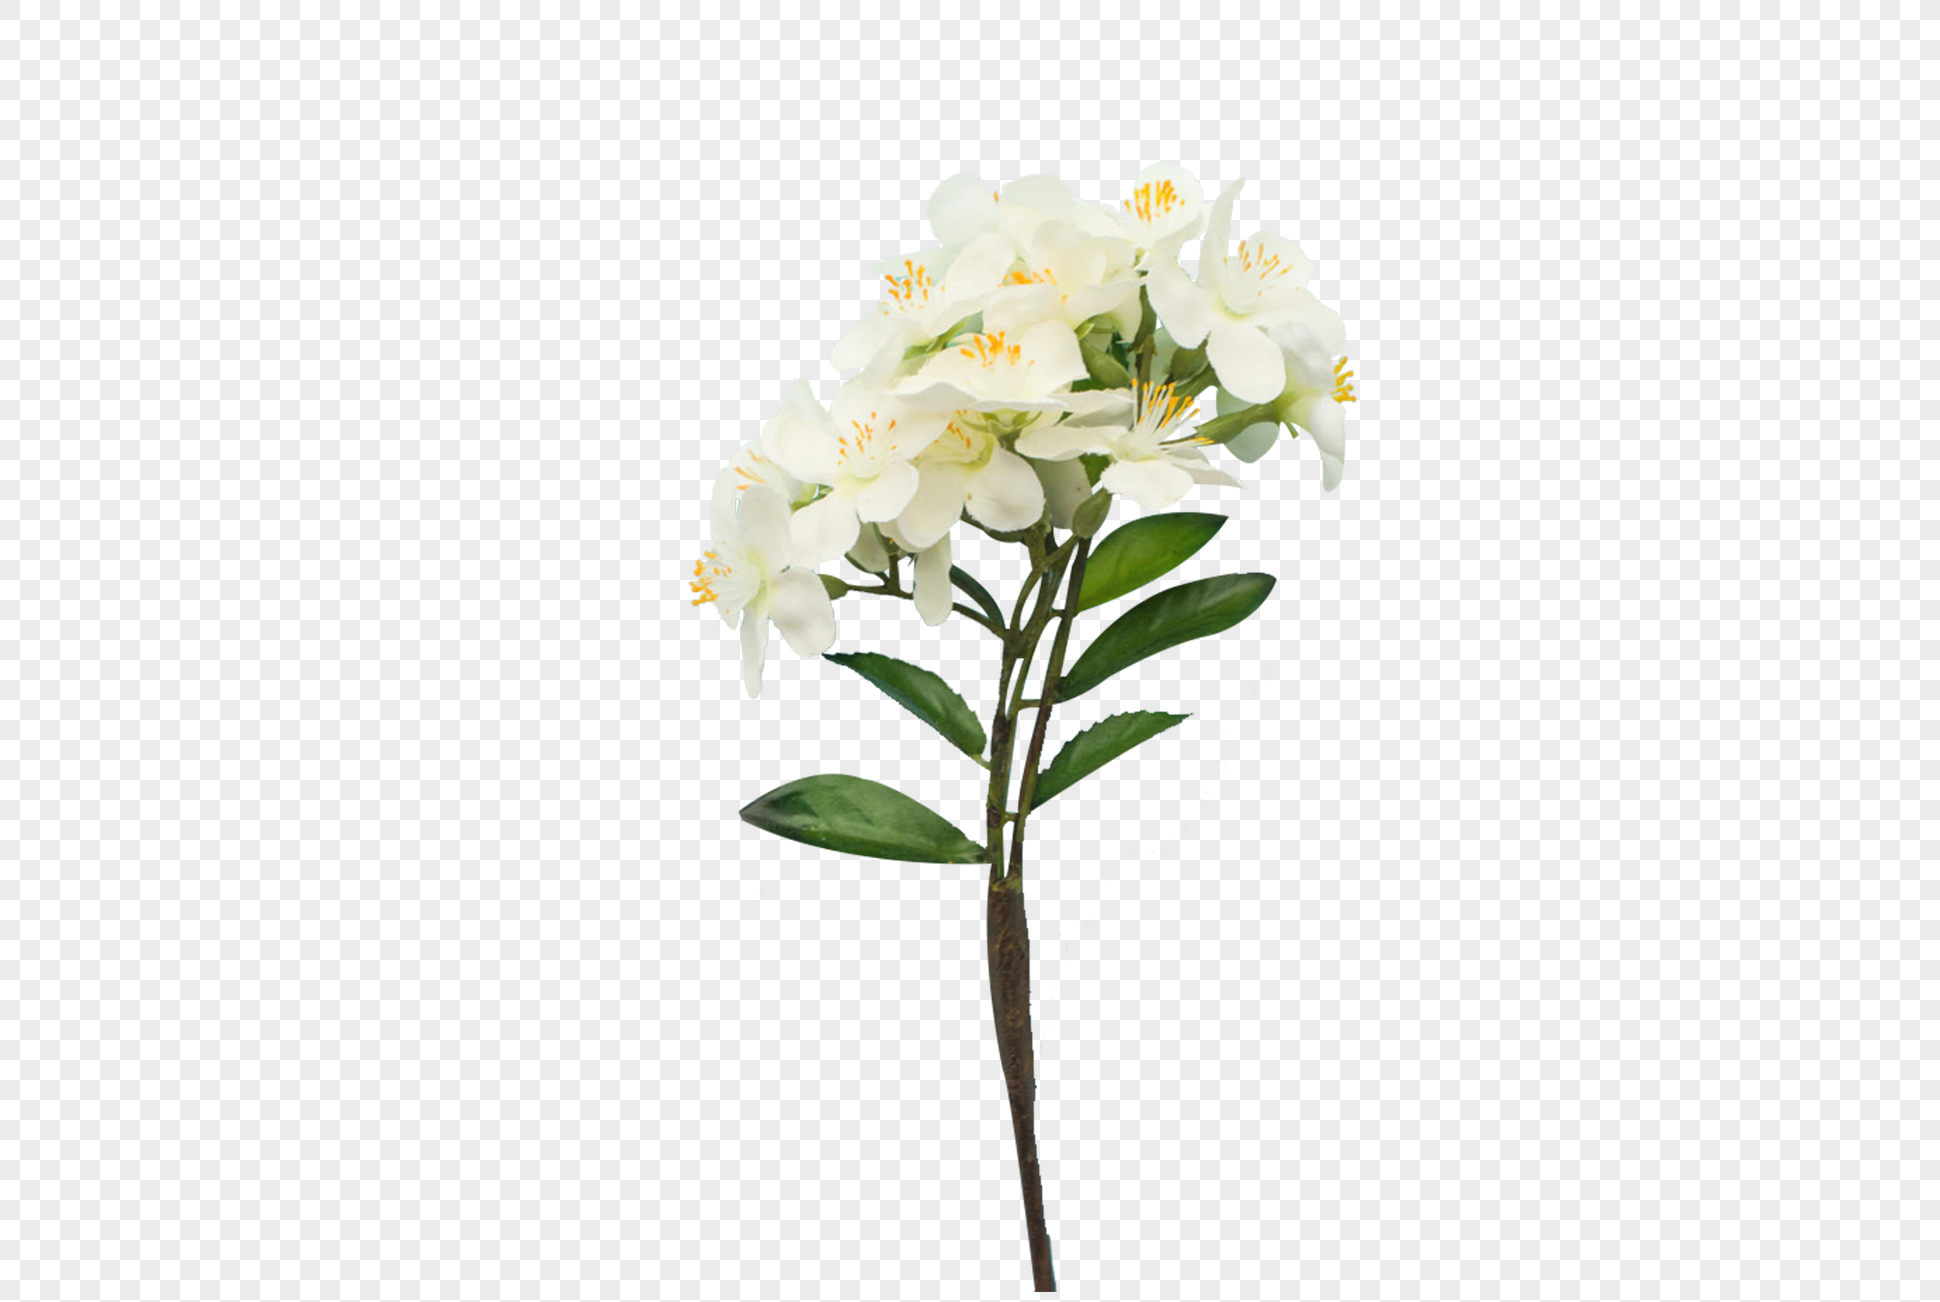 A Bunch Of White Flowers Png Imagepicture Free Download